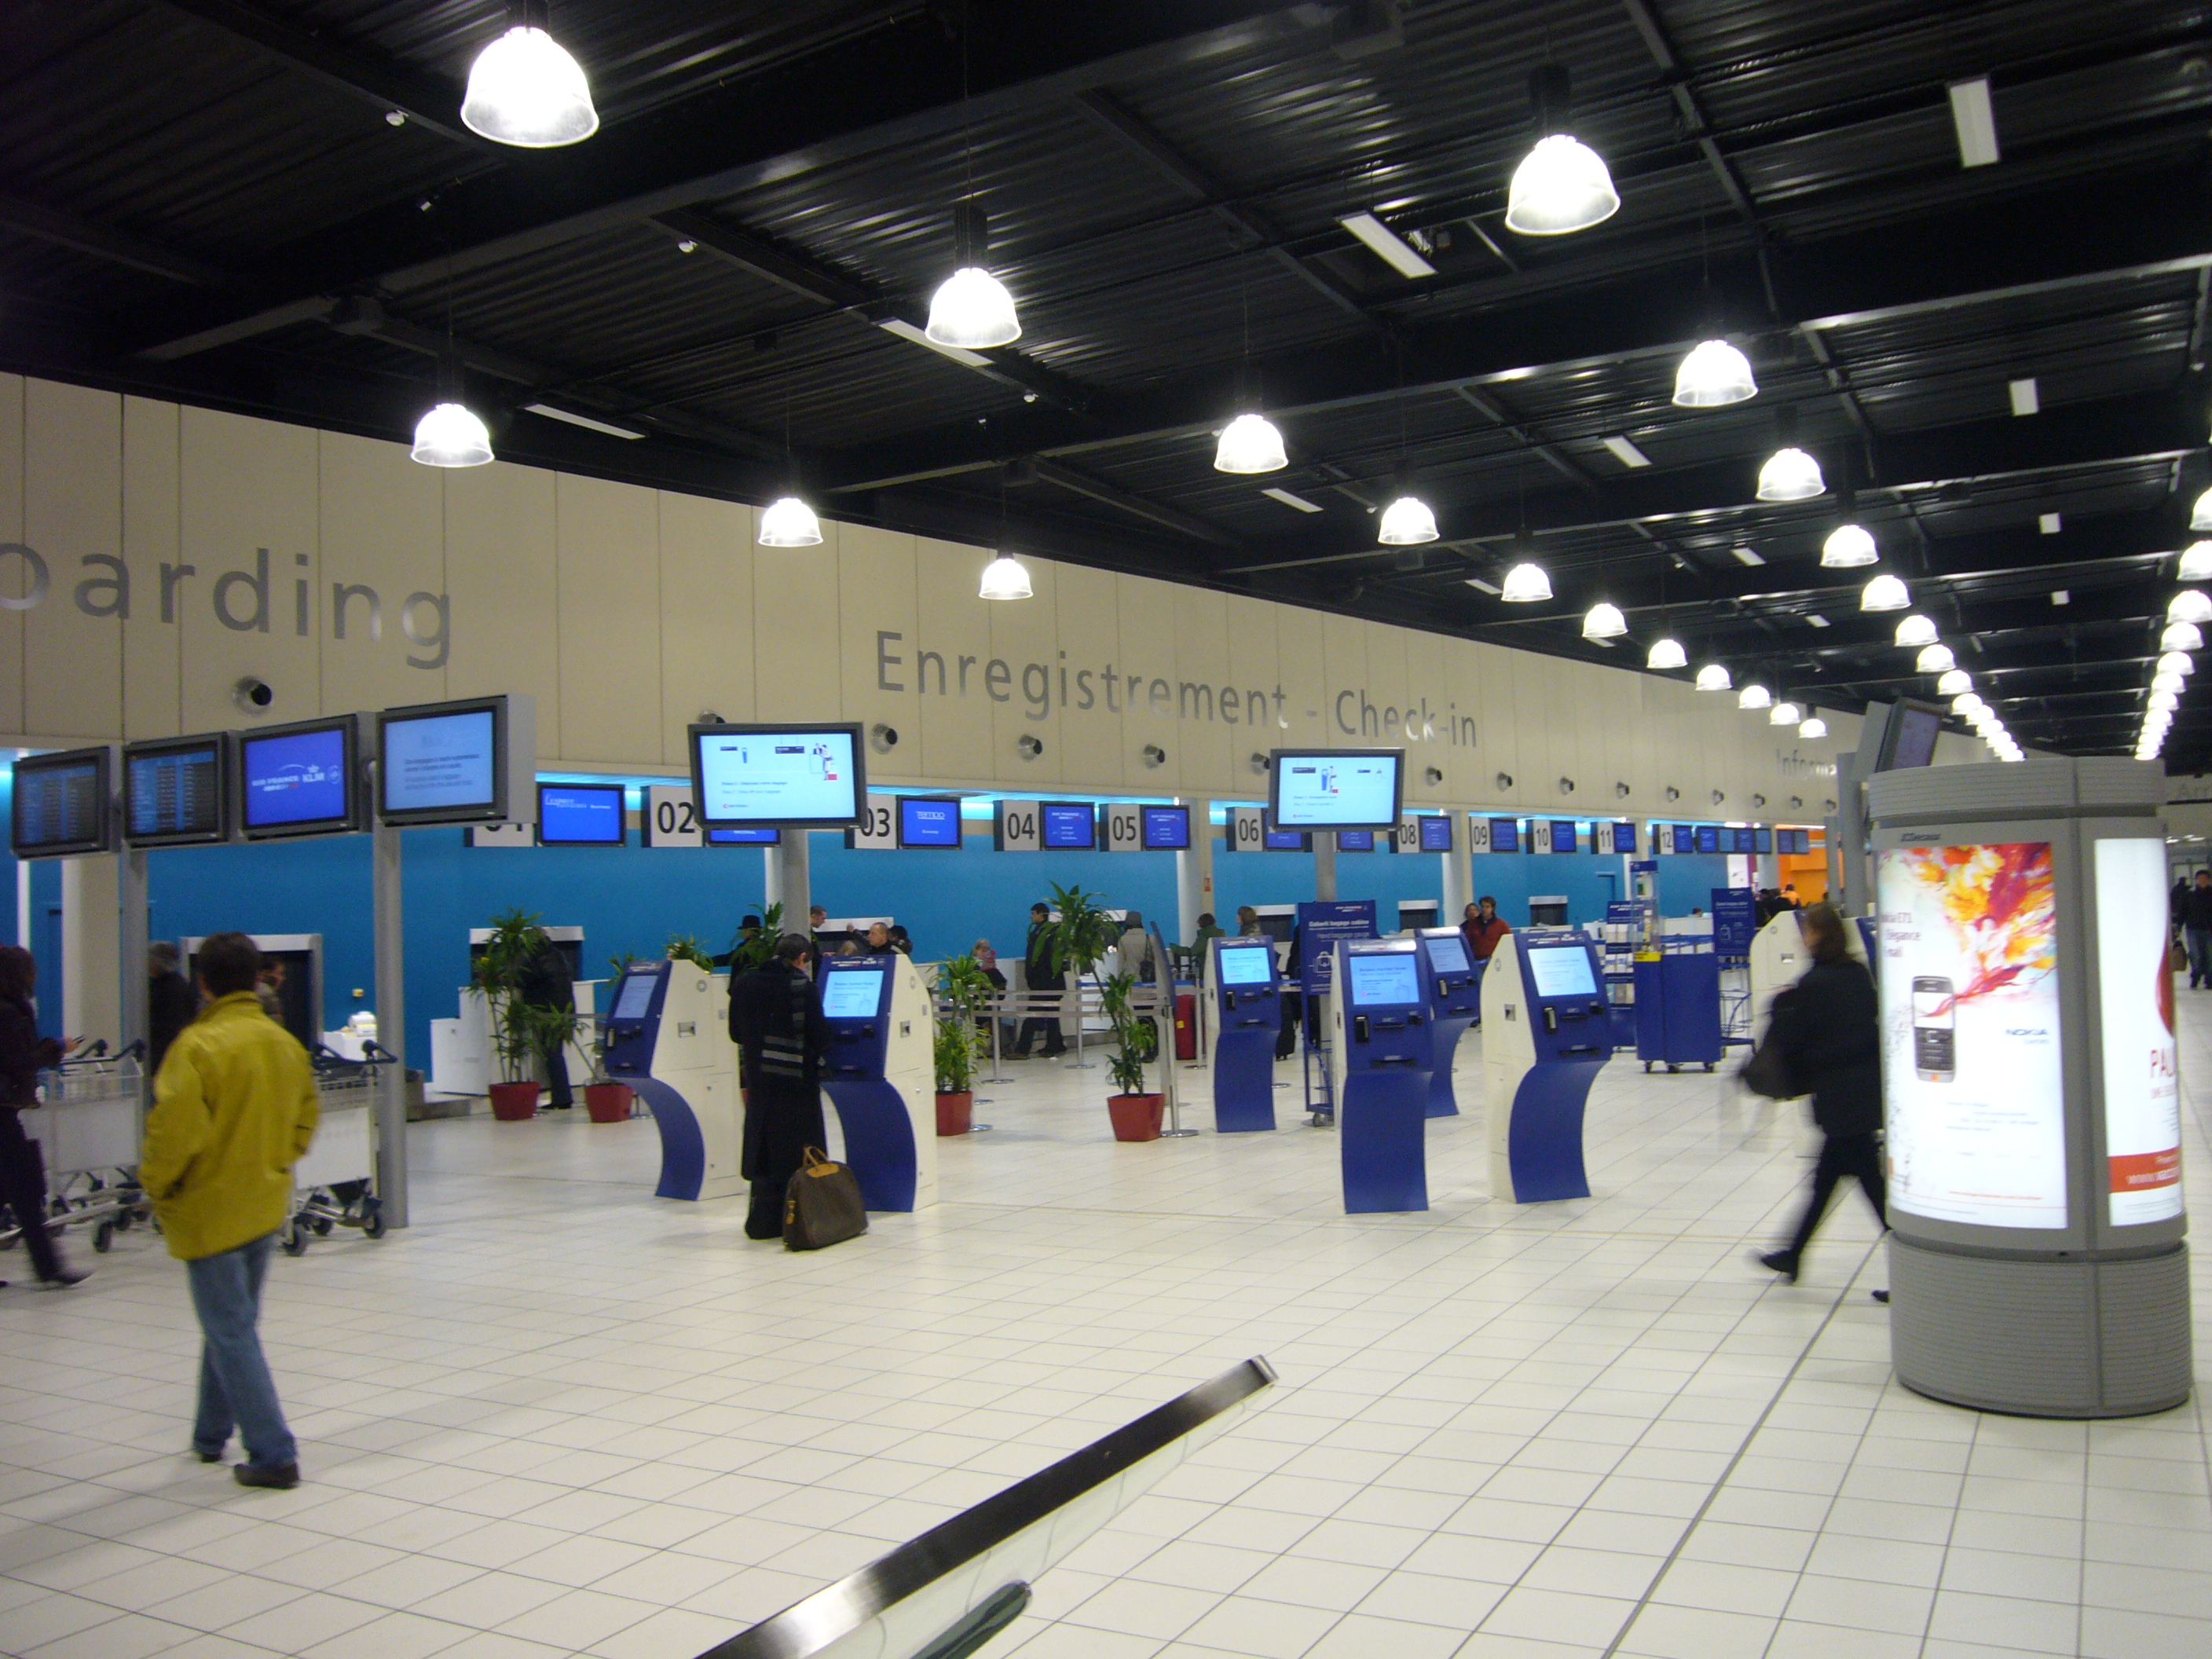 Airlines Charles De Gaulle Airport